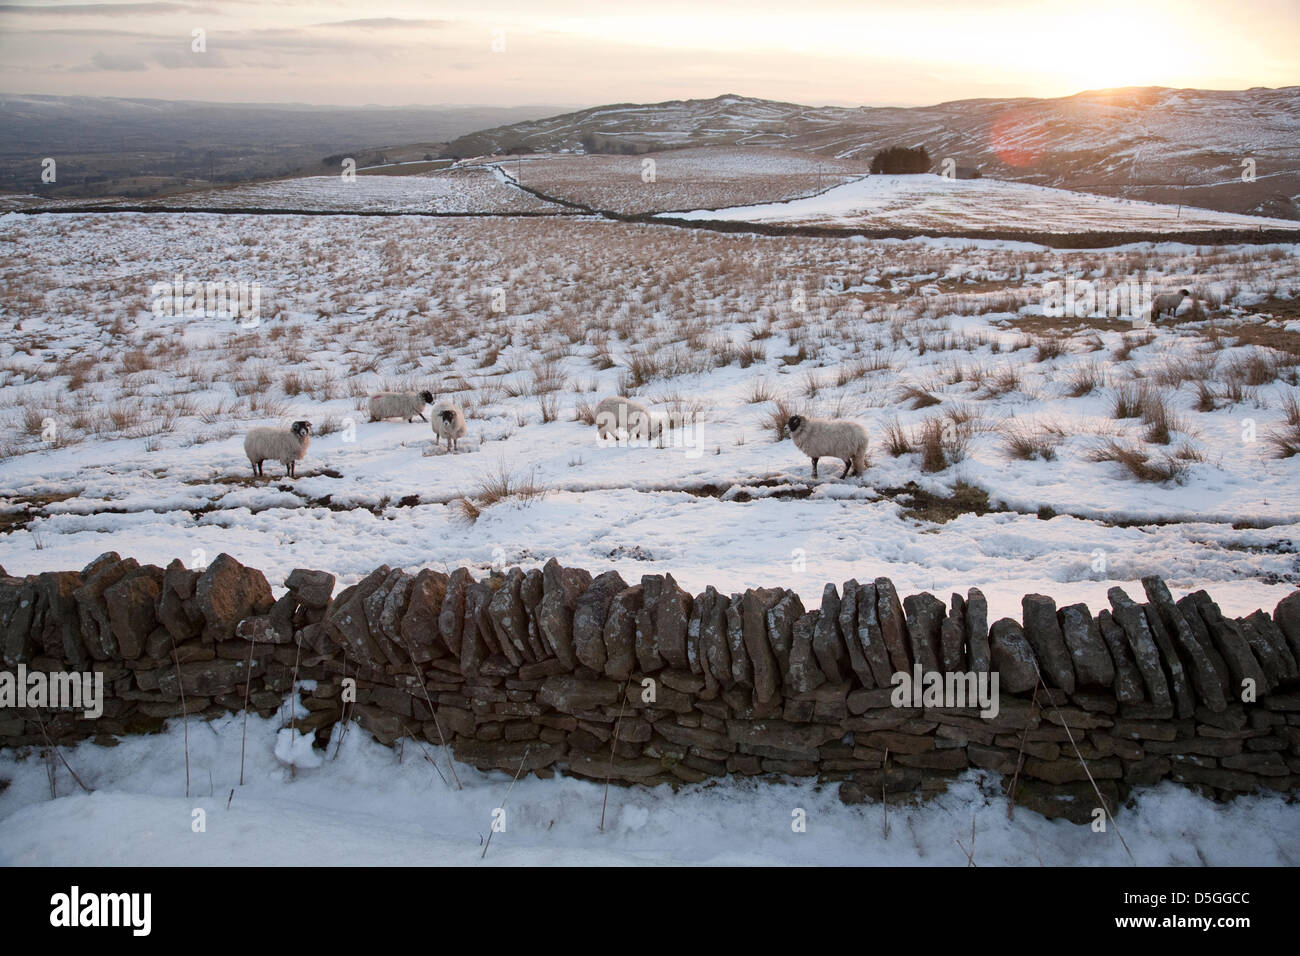 Teesdale, County Durham, UK. 31st March 2013. Snow cover remains in Teesdale, County Durham, England, UK where sheep Stock Photo